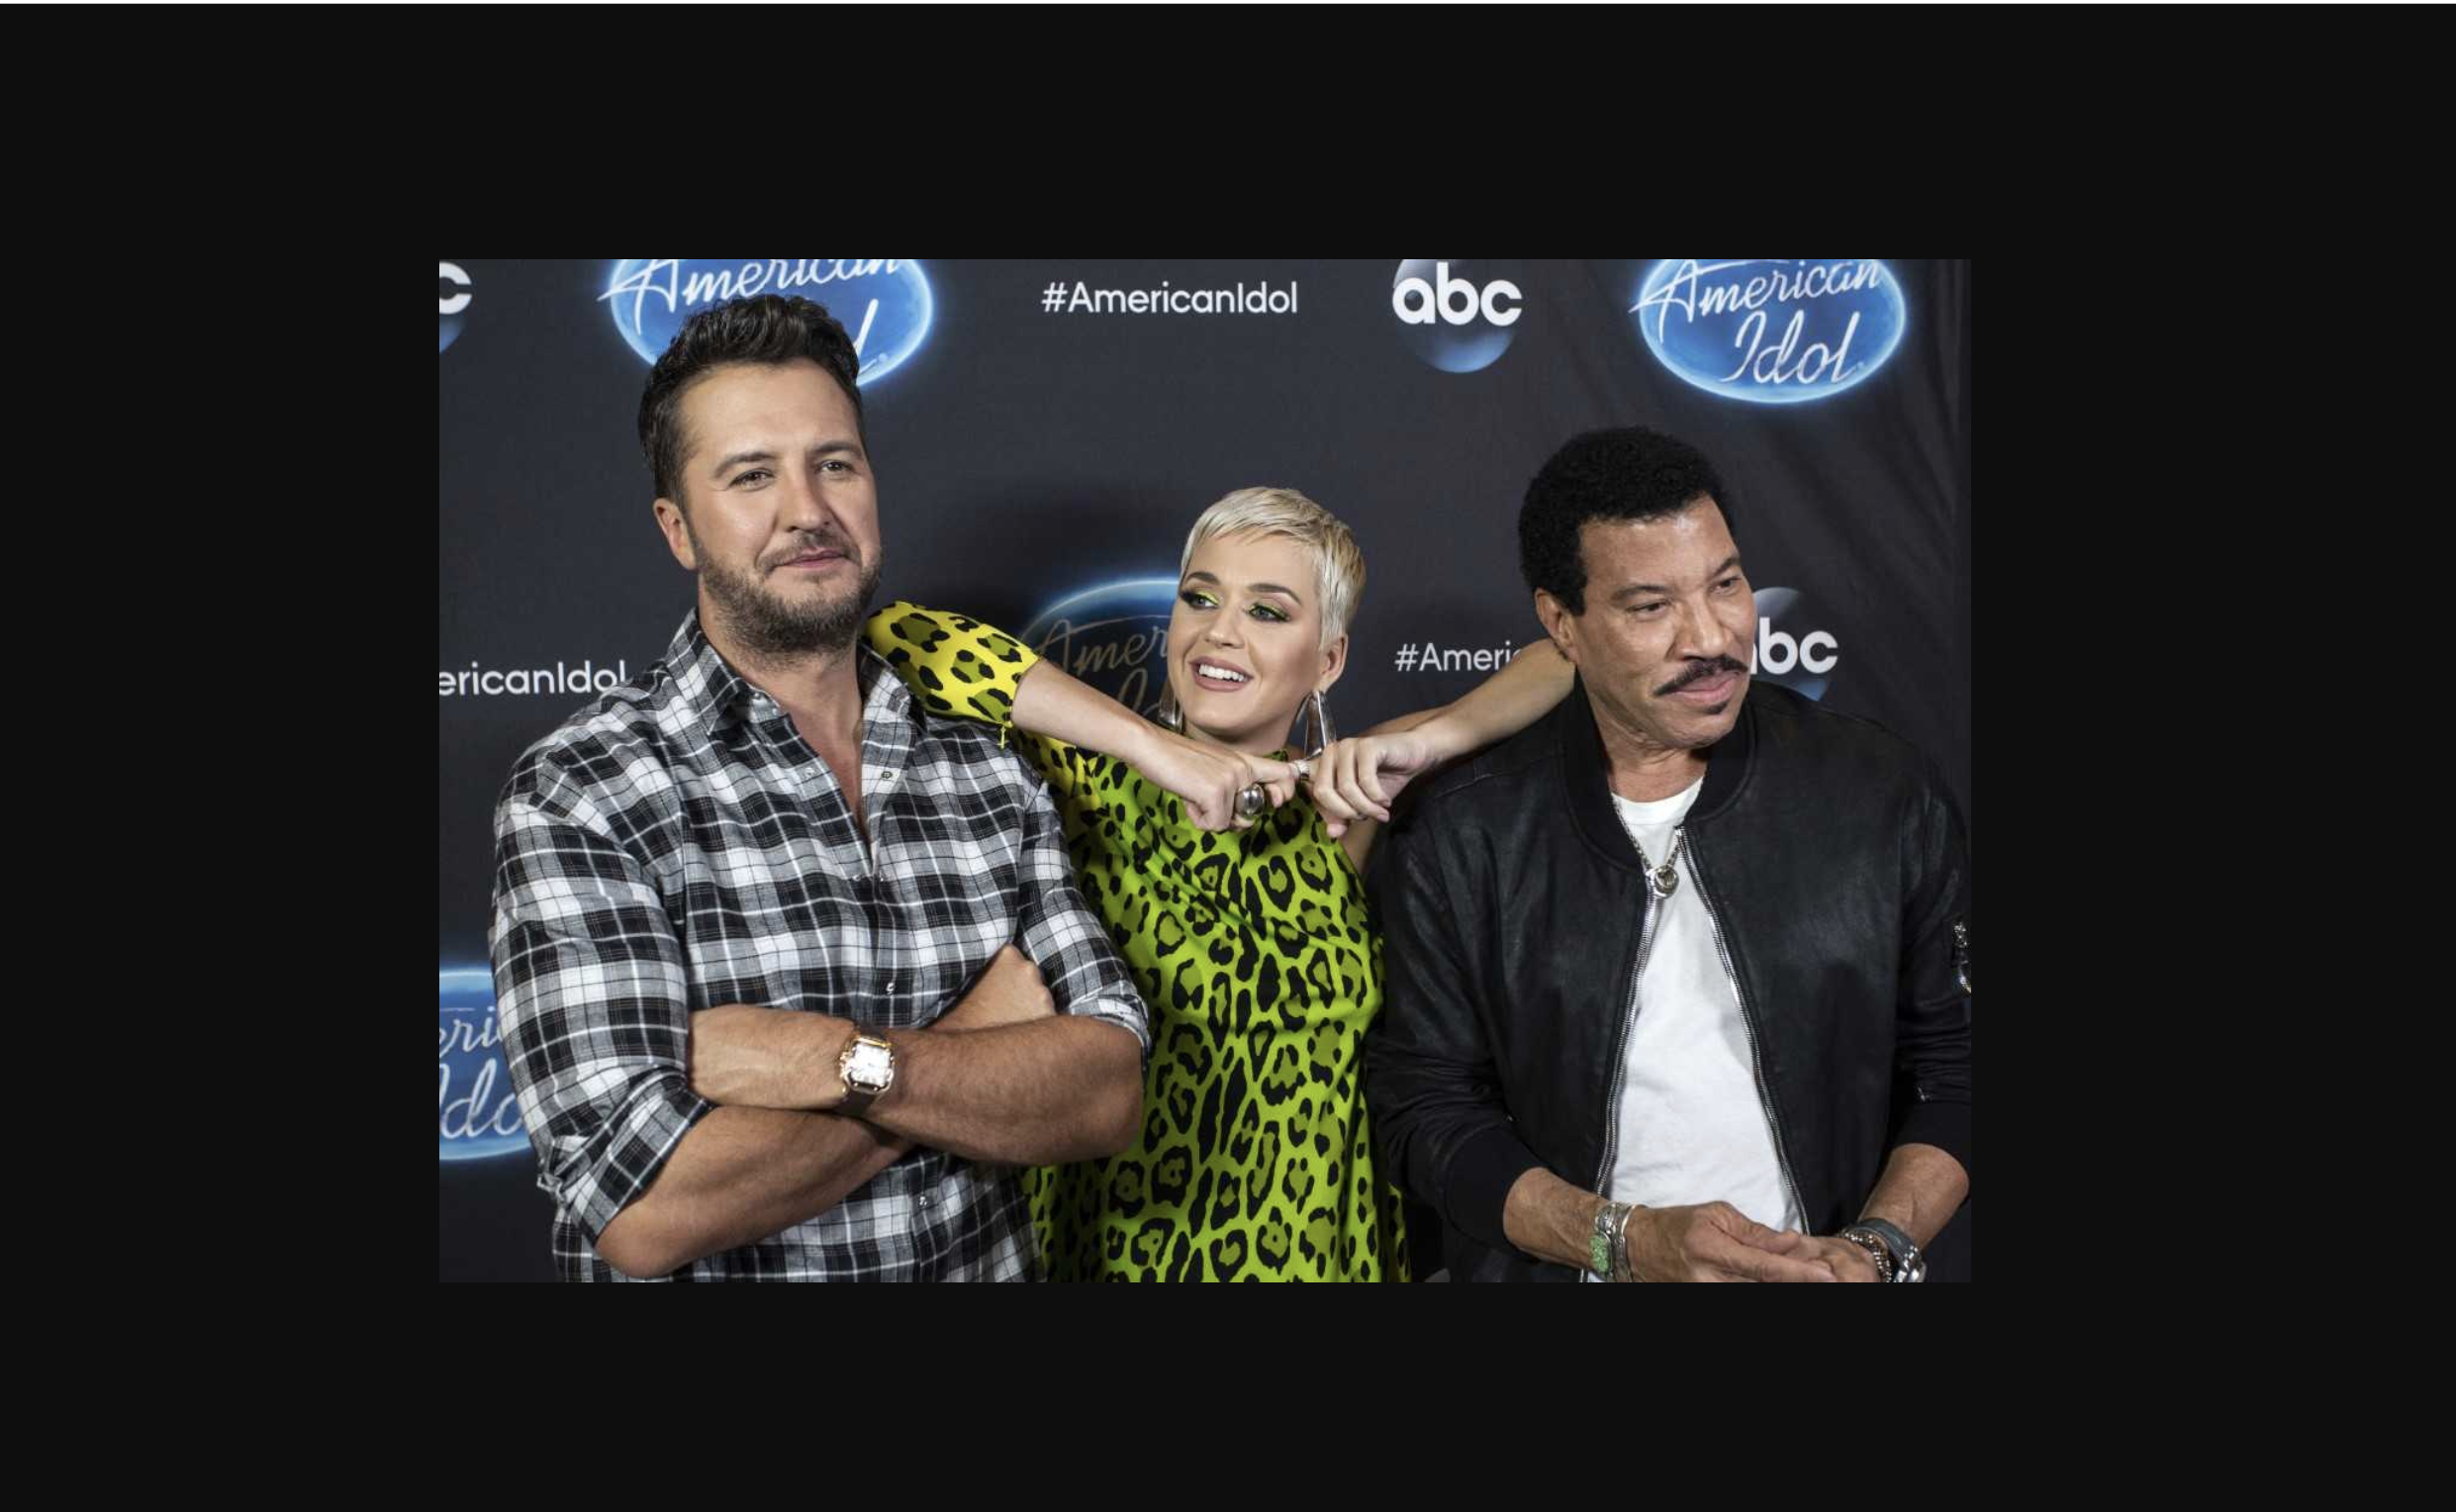 american idol judges in louisville to find new talent